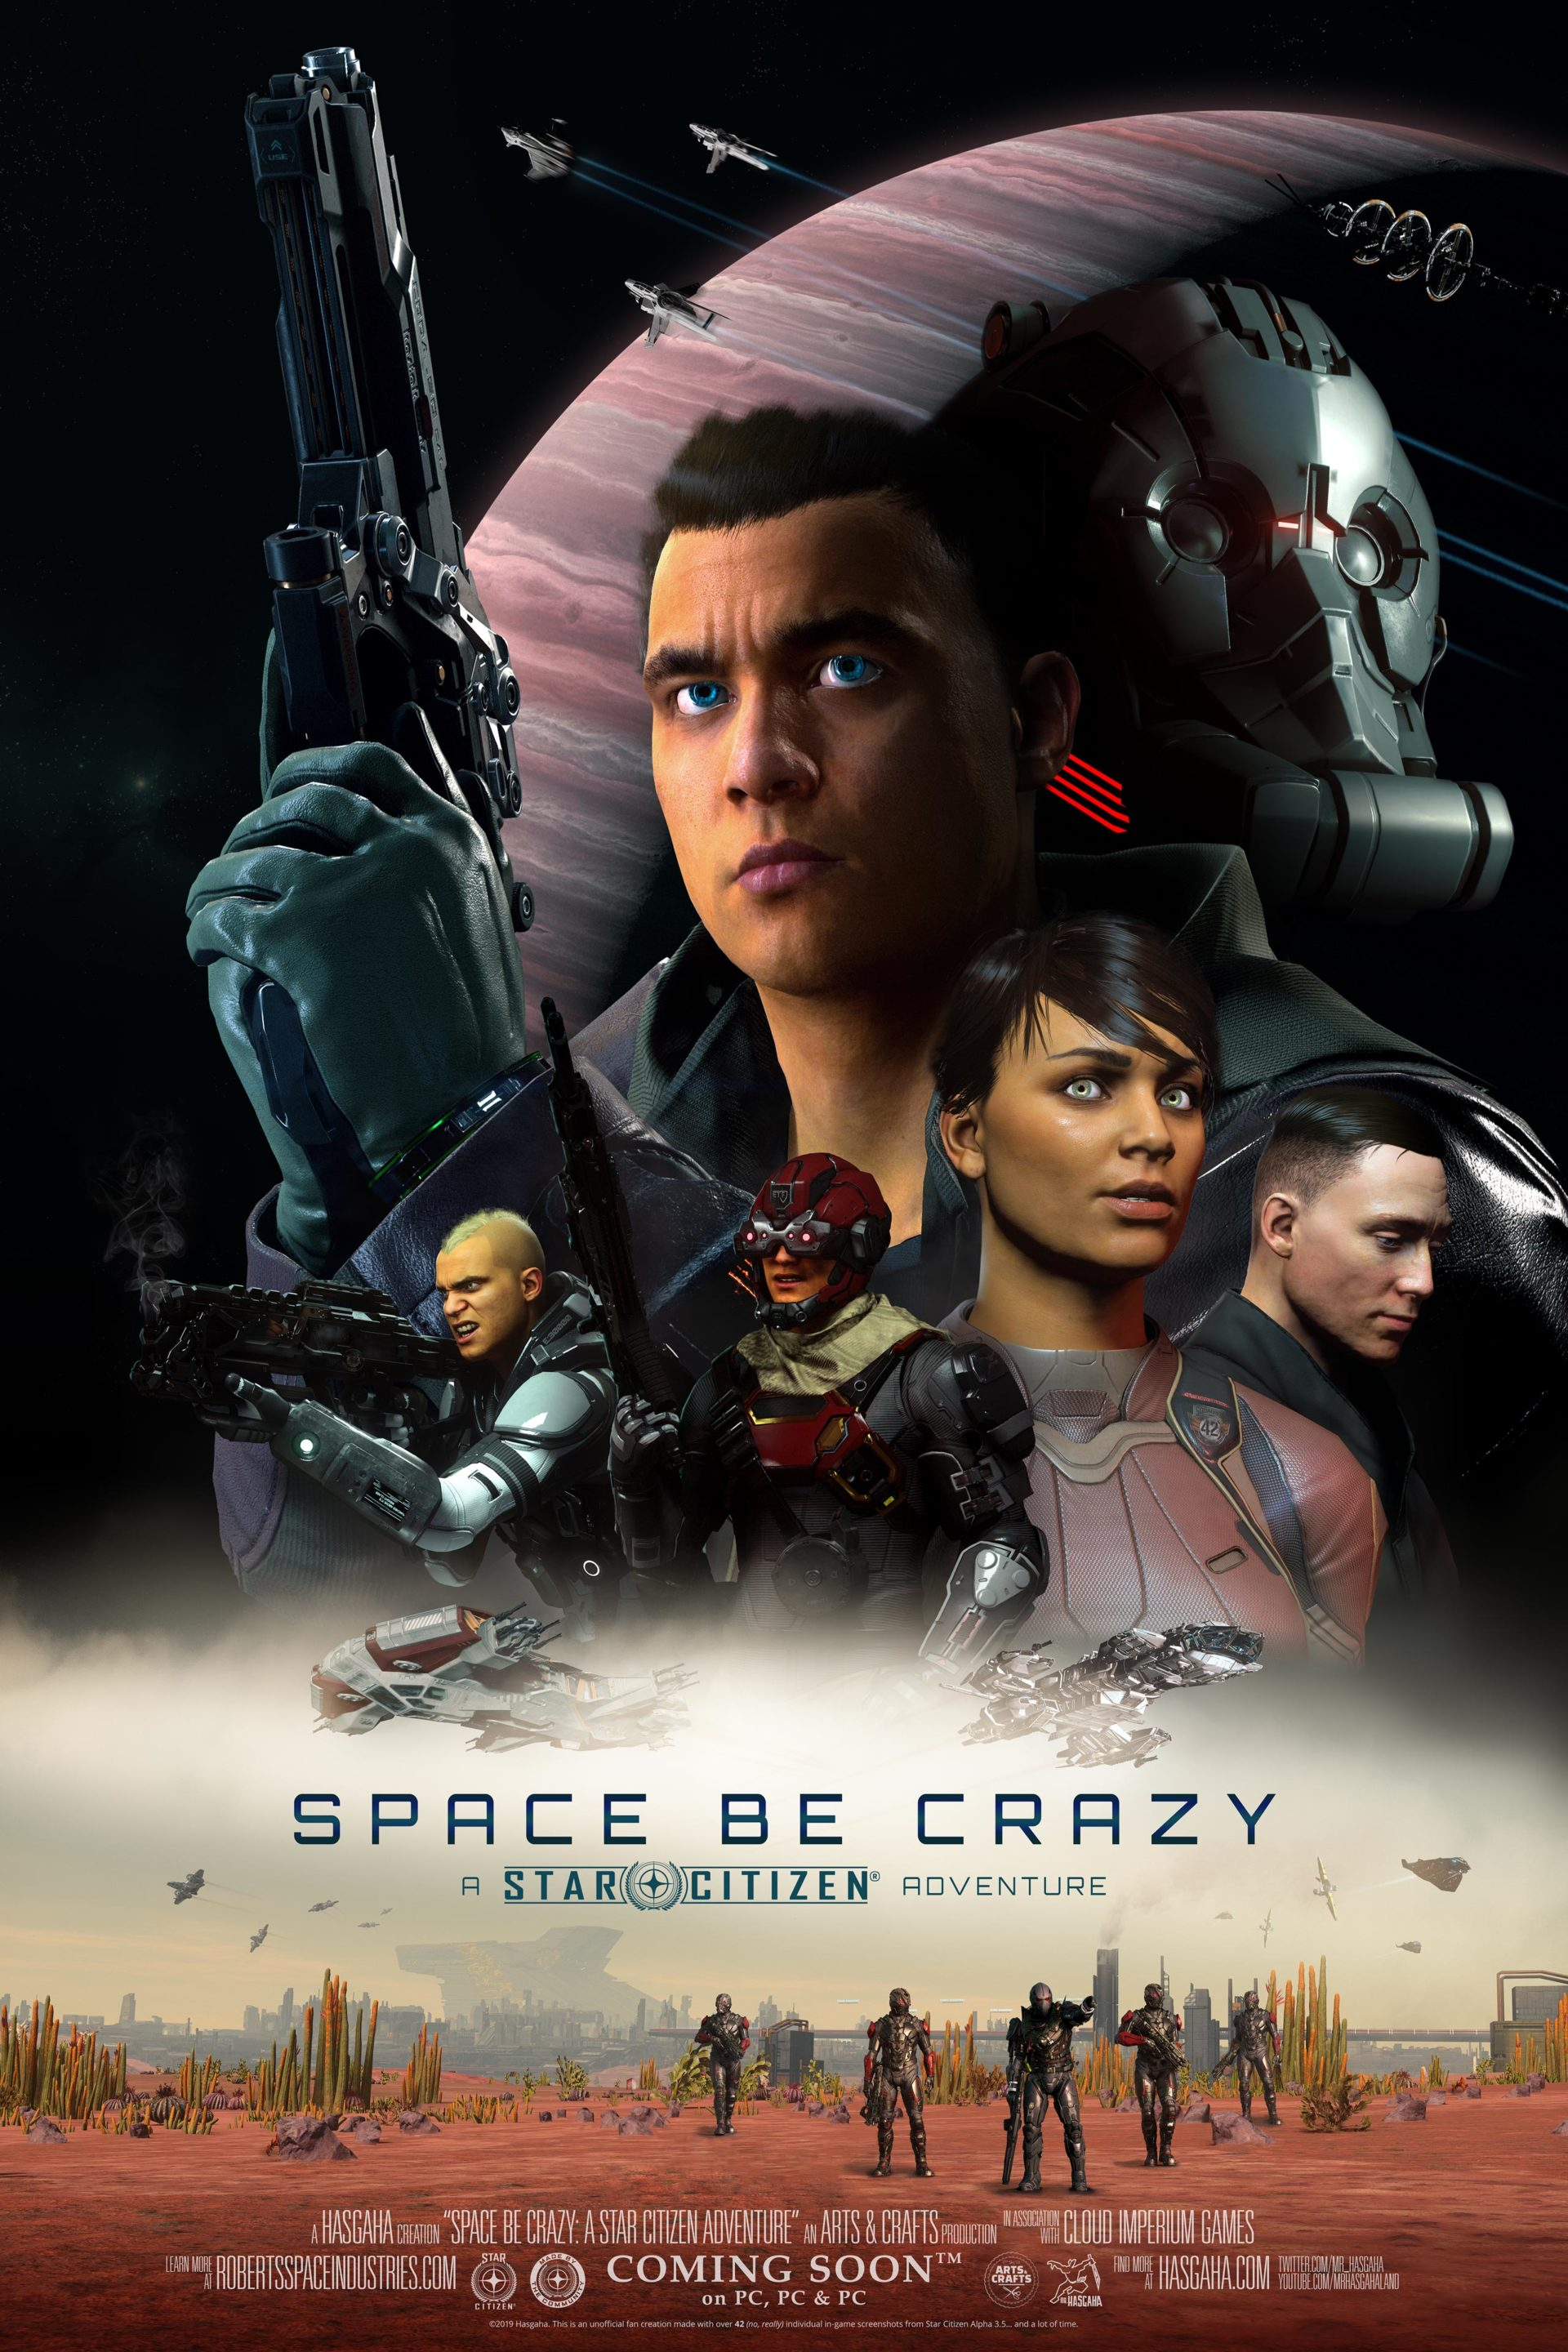 Space Be Crazy poster